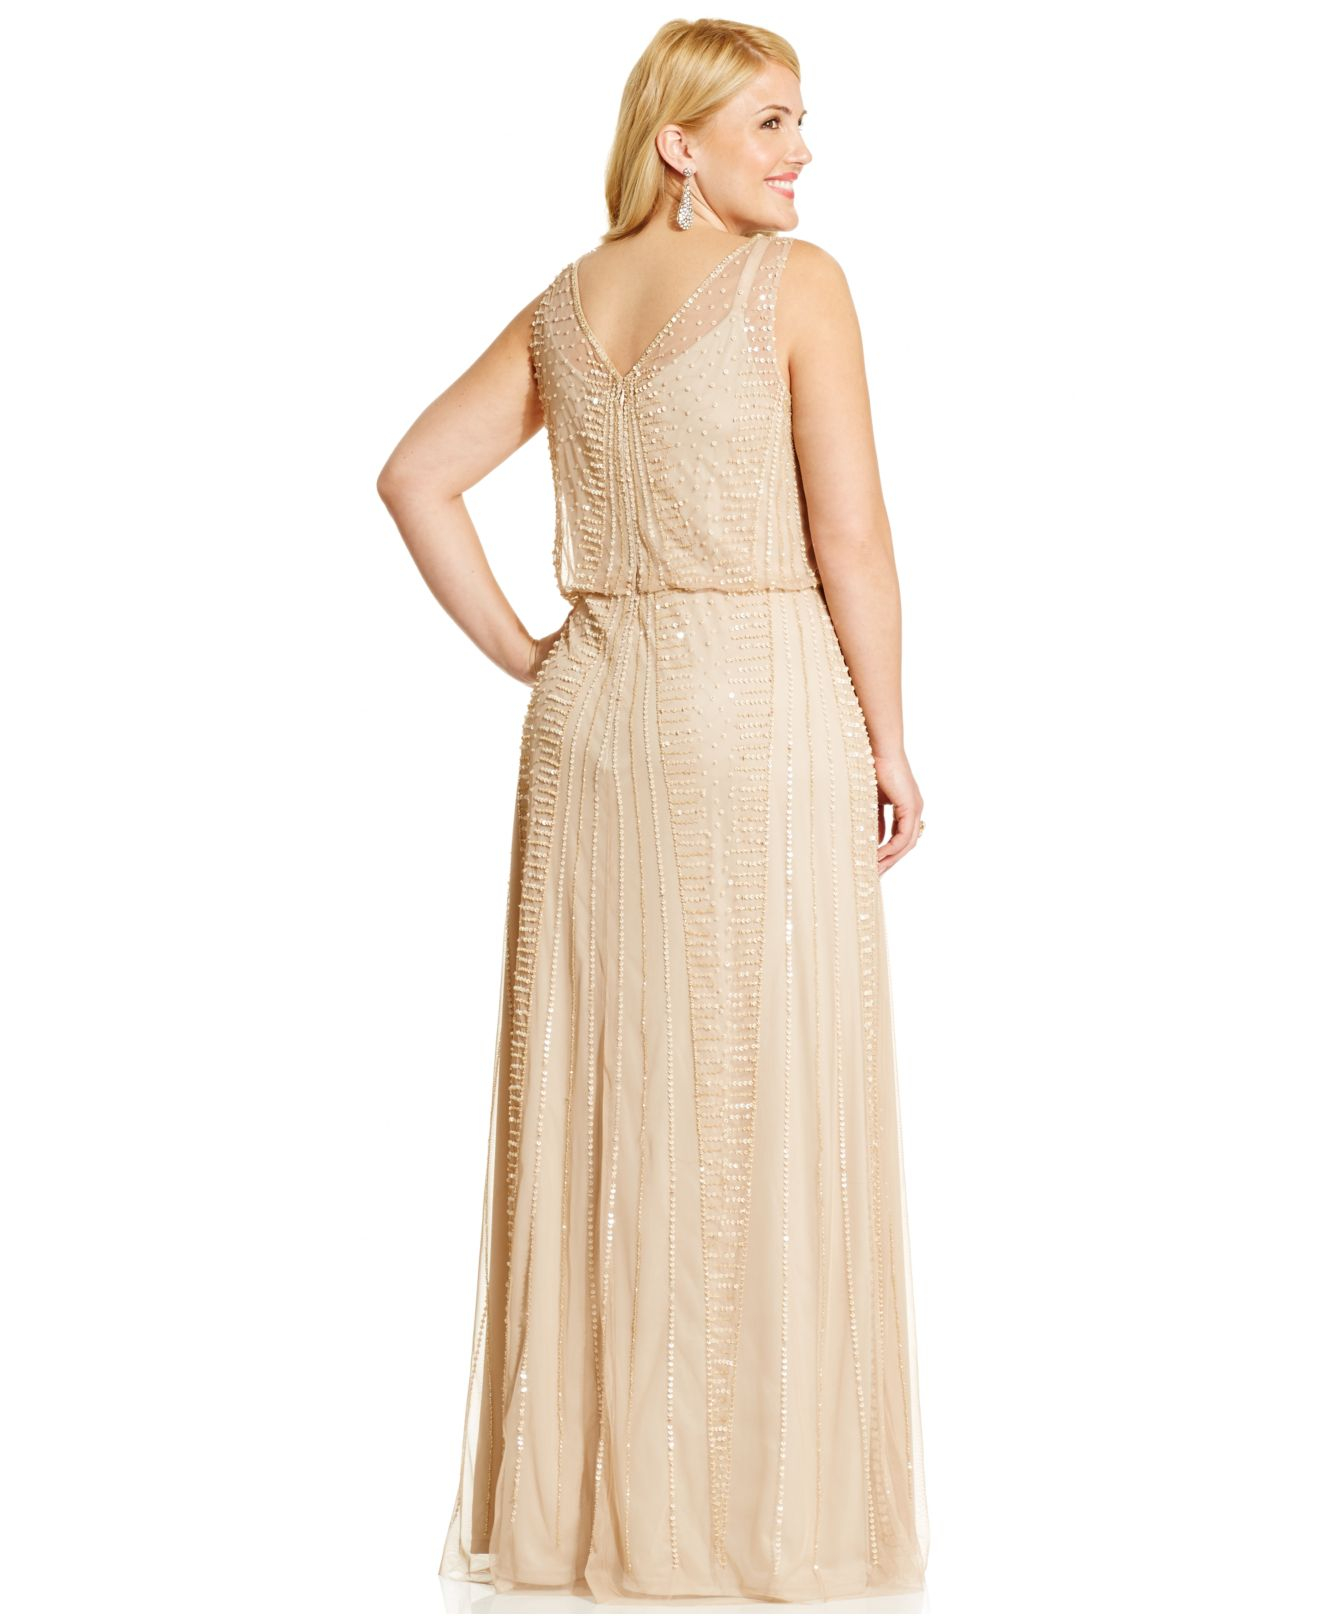 402032cf077 Lyst - Adrianna Papell Plus Size Embellished Gown in Metallic